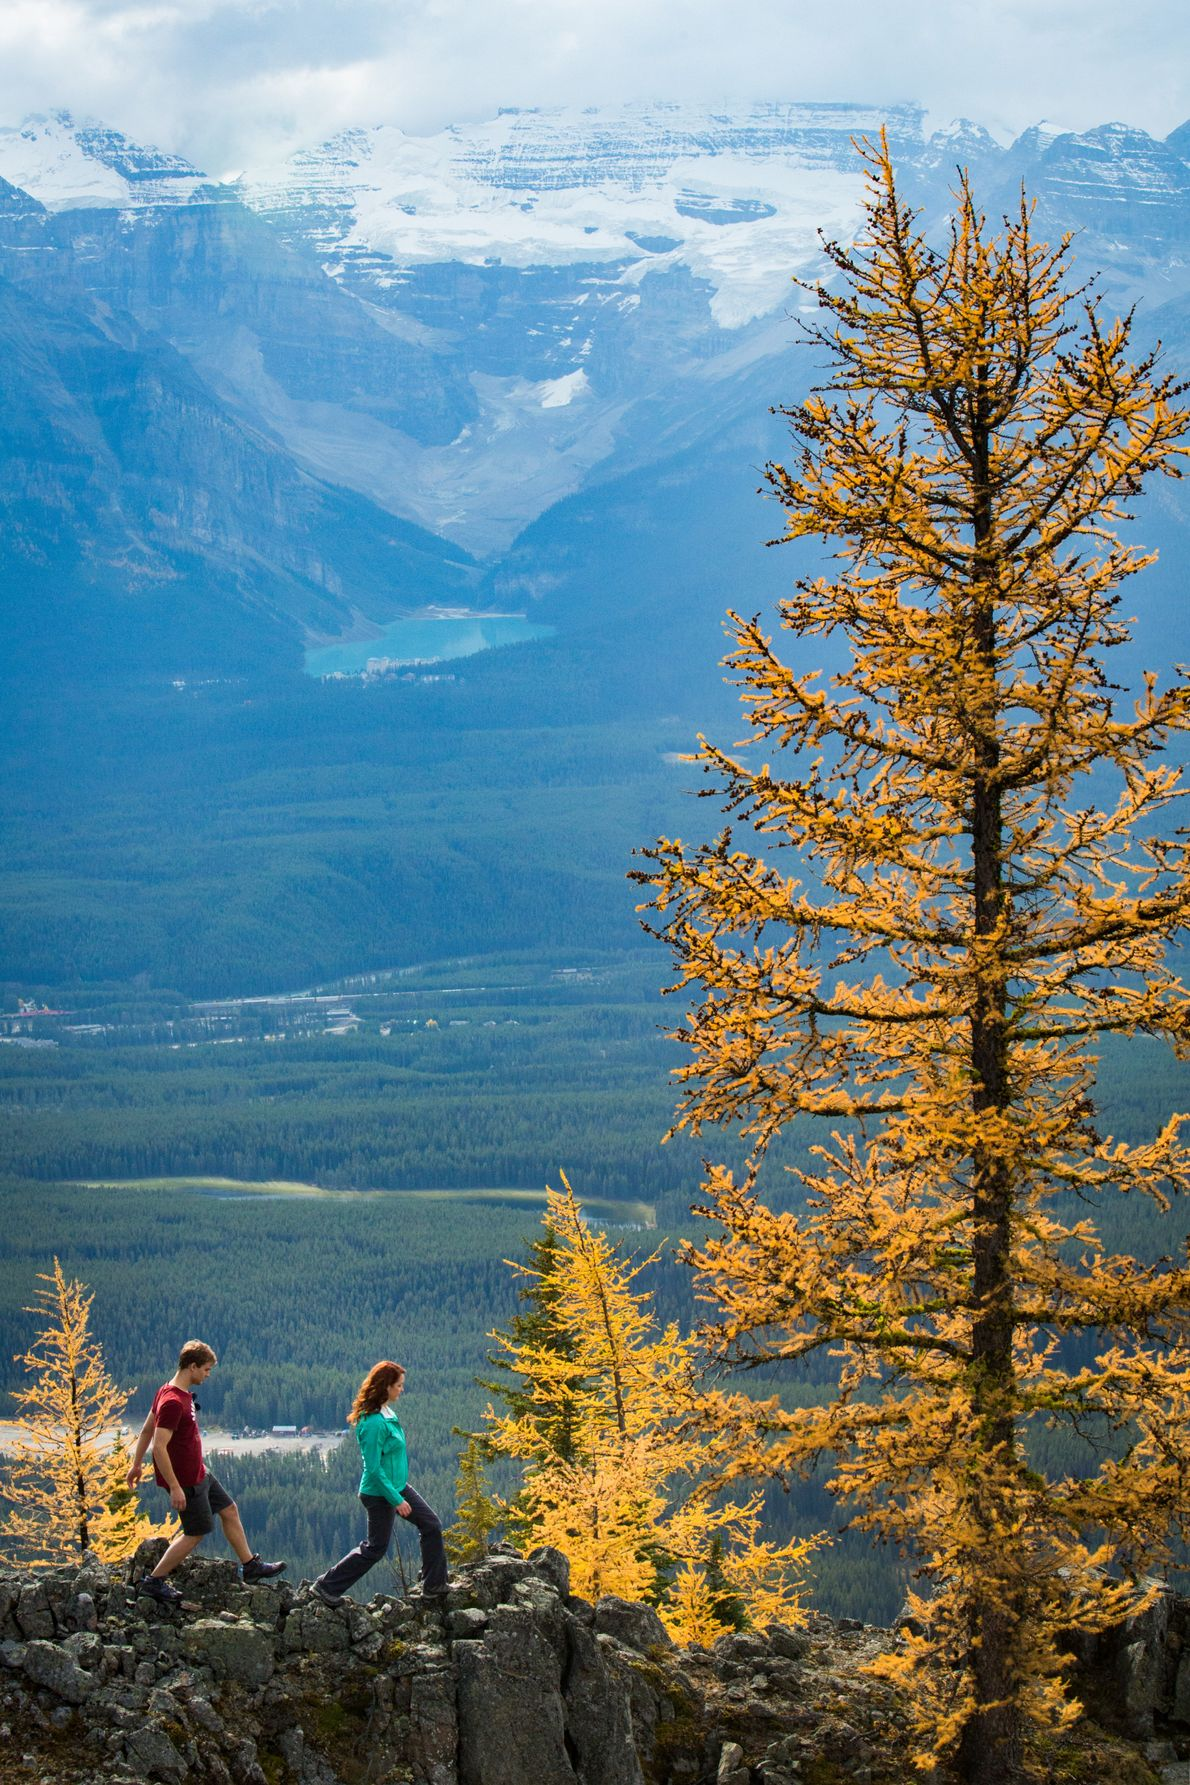 There are hikes for all ability levels around Lake Louise that offer breathtaking views.